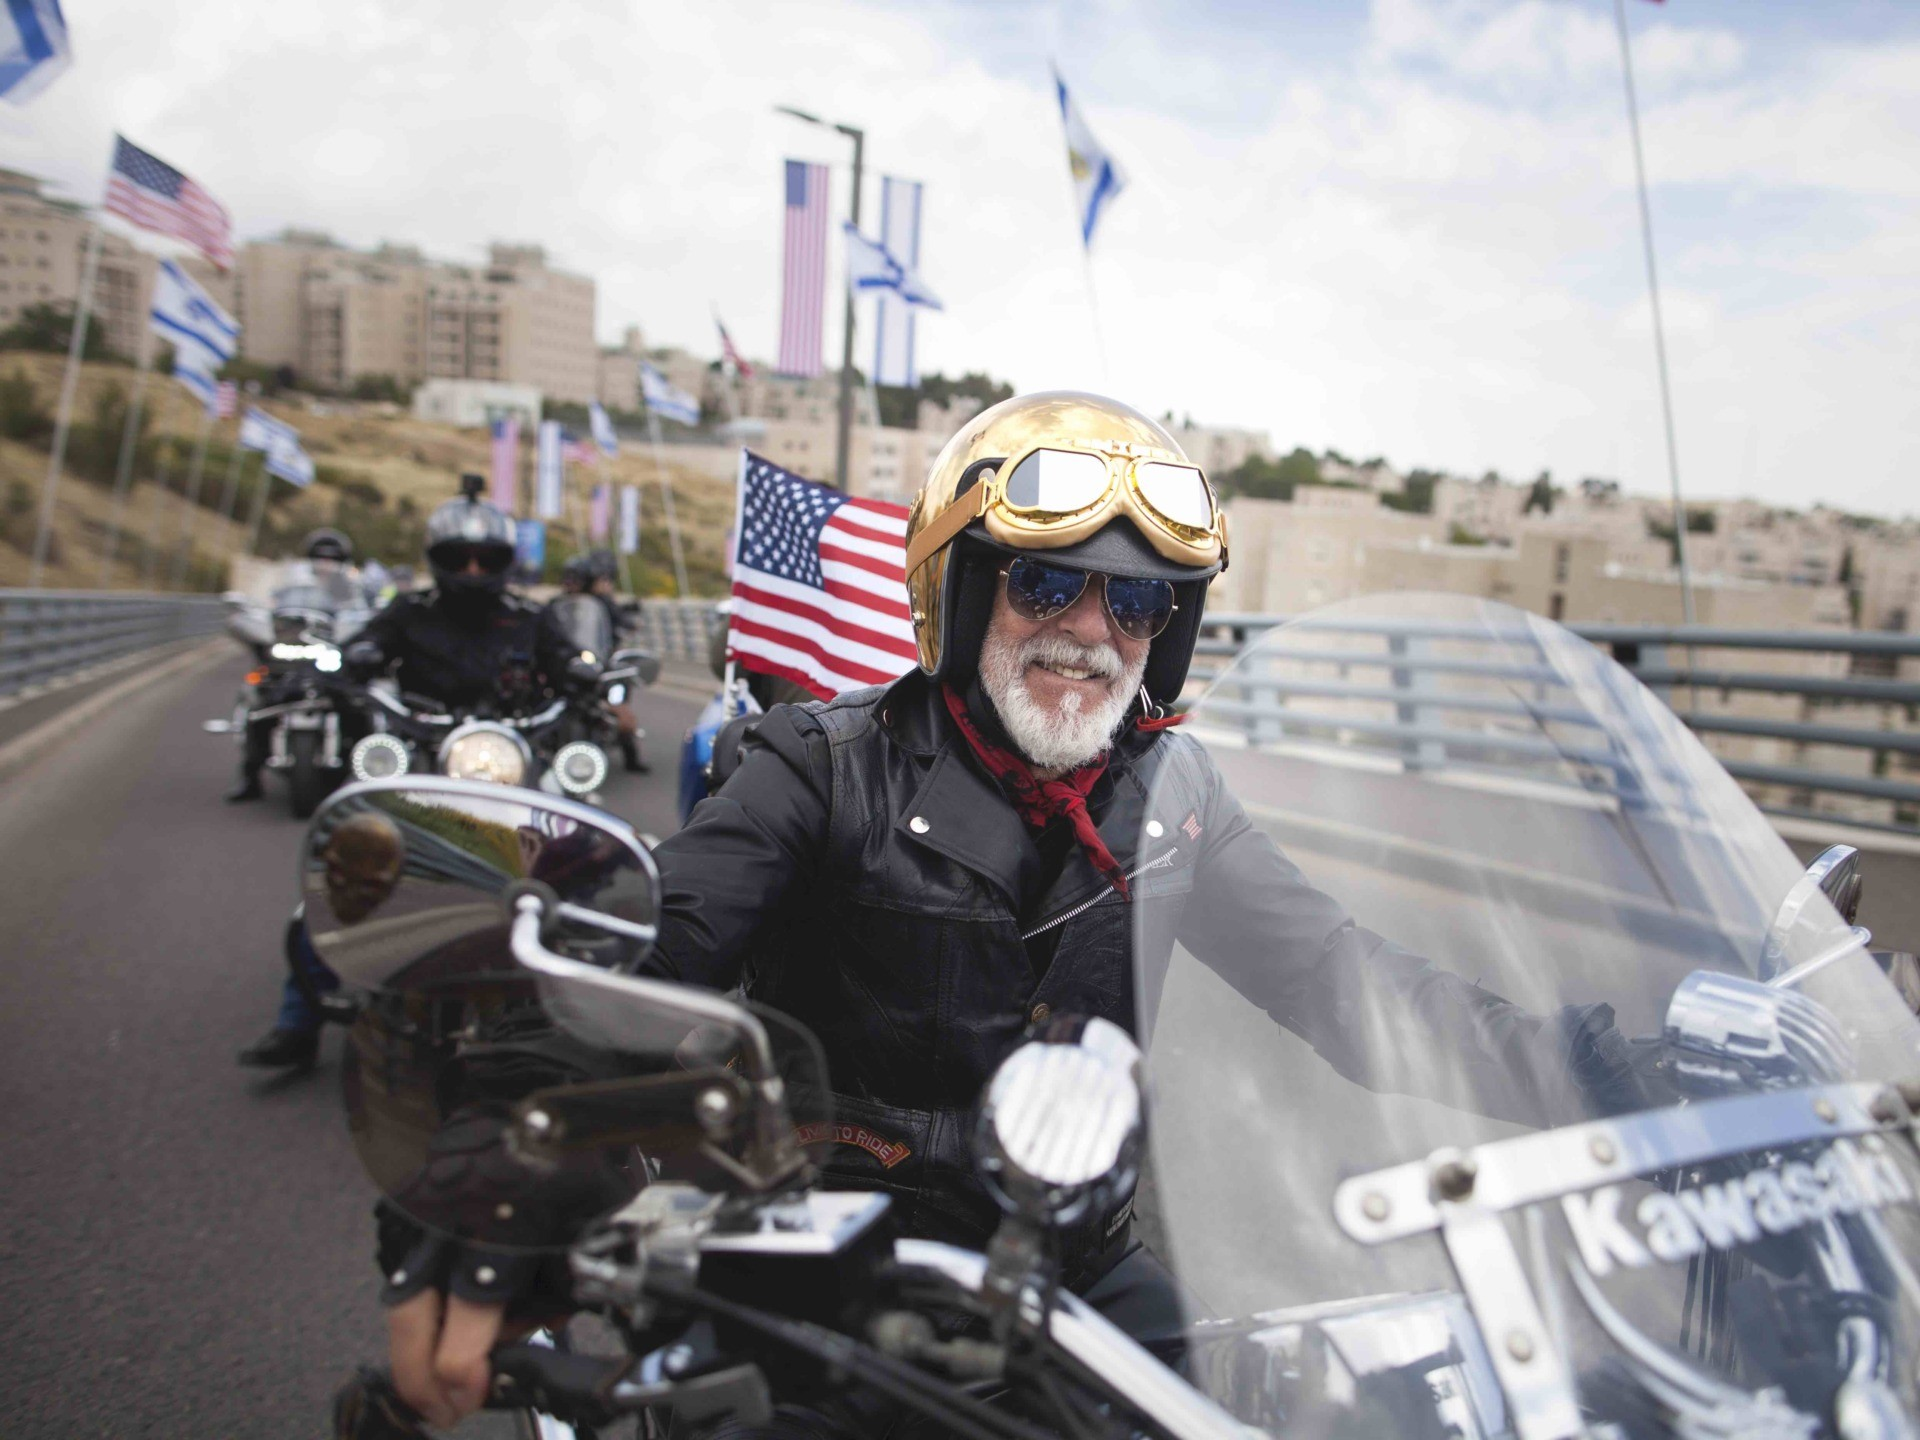 WATCH: Bikers Rally for Trump in Jerusalem Old City